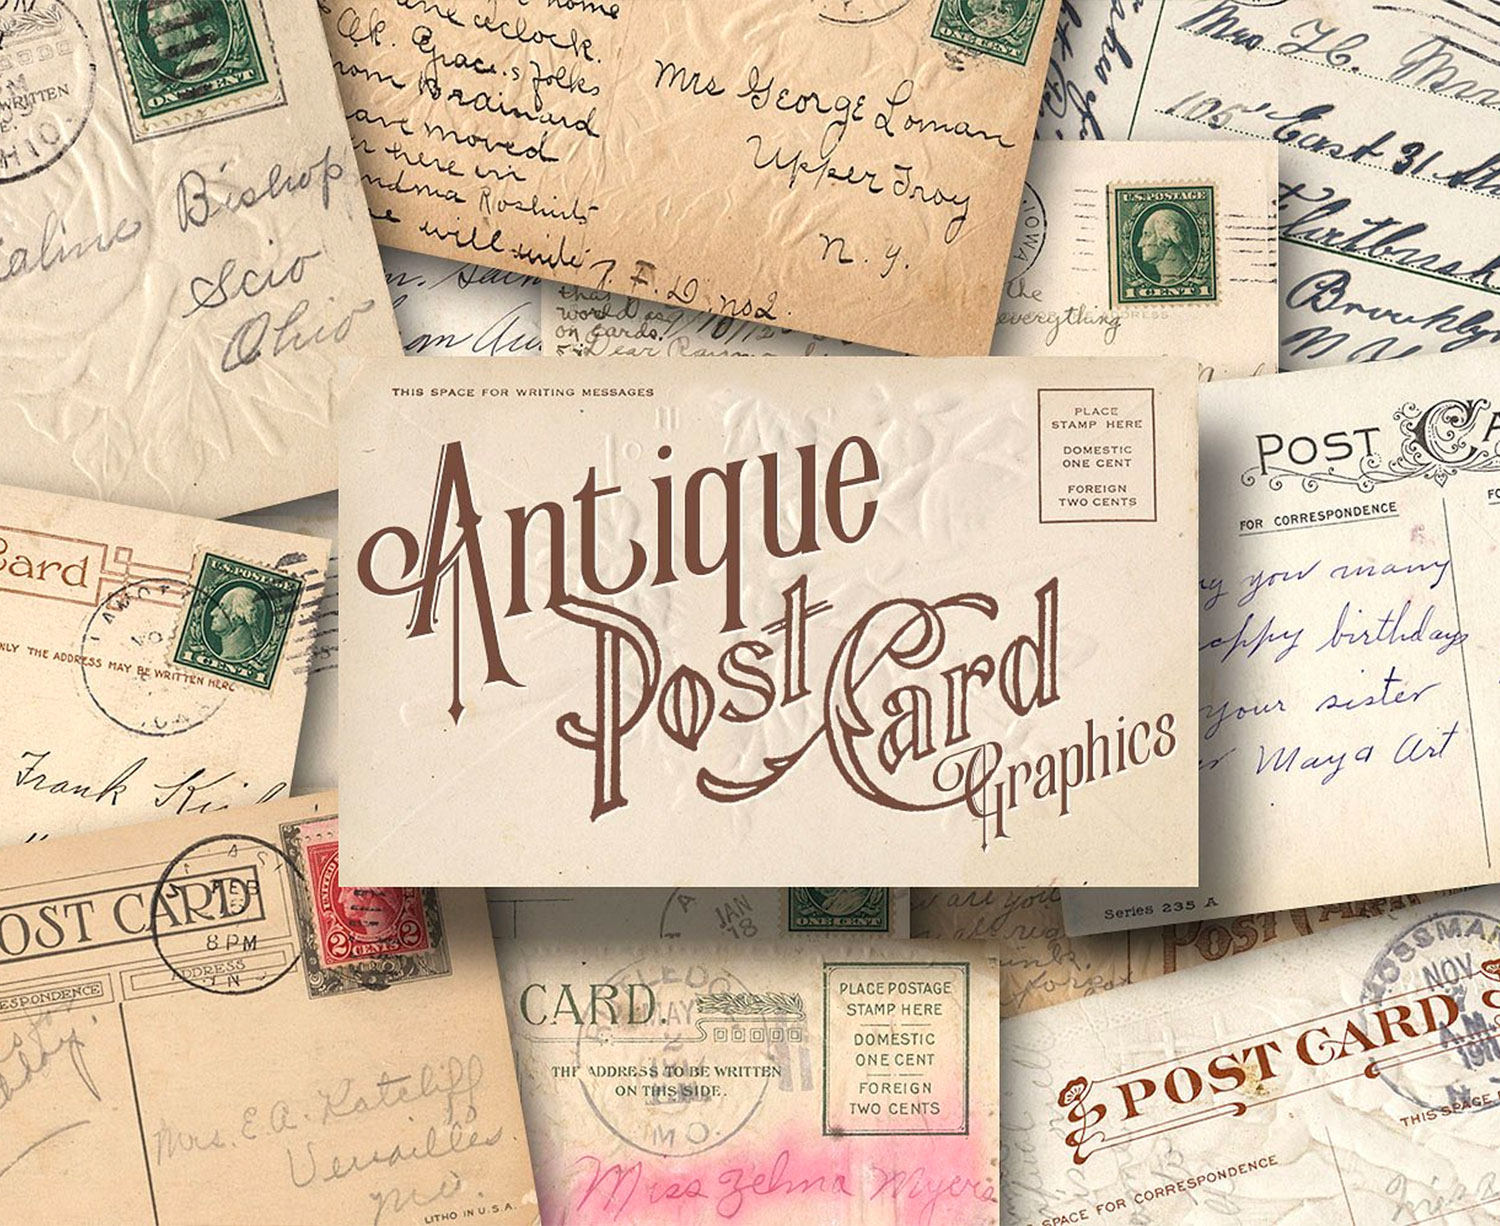 Antique-Postcards-top-image